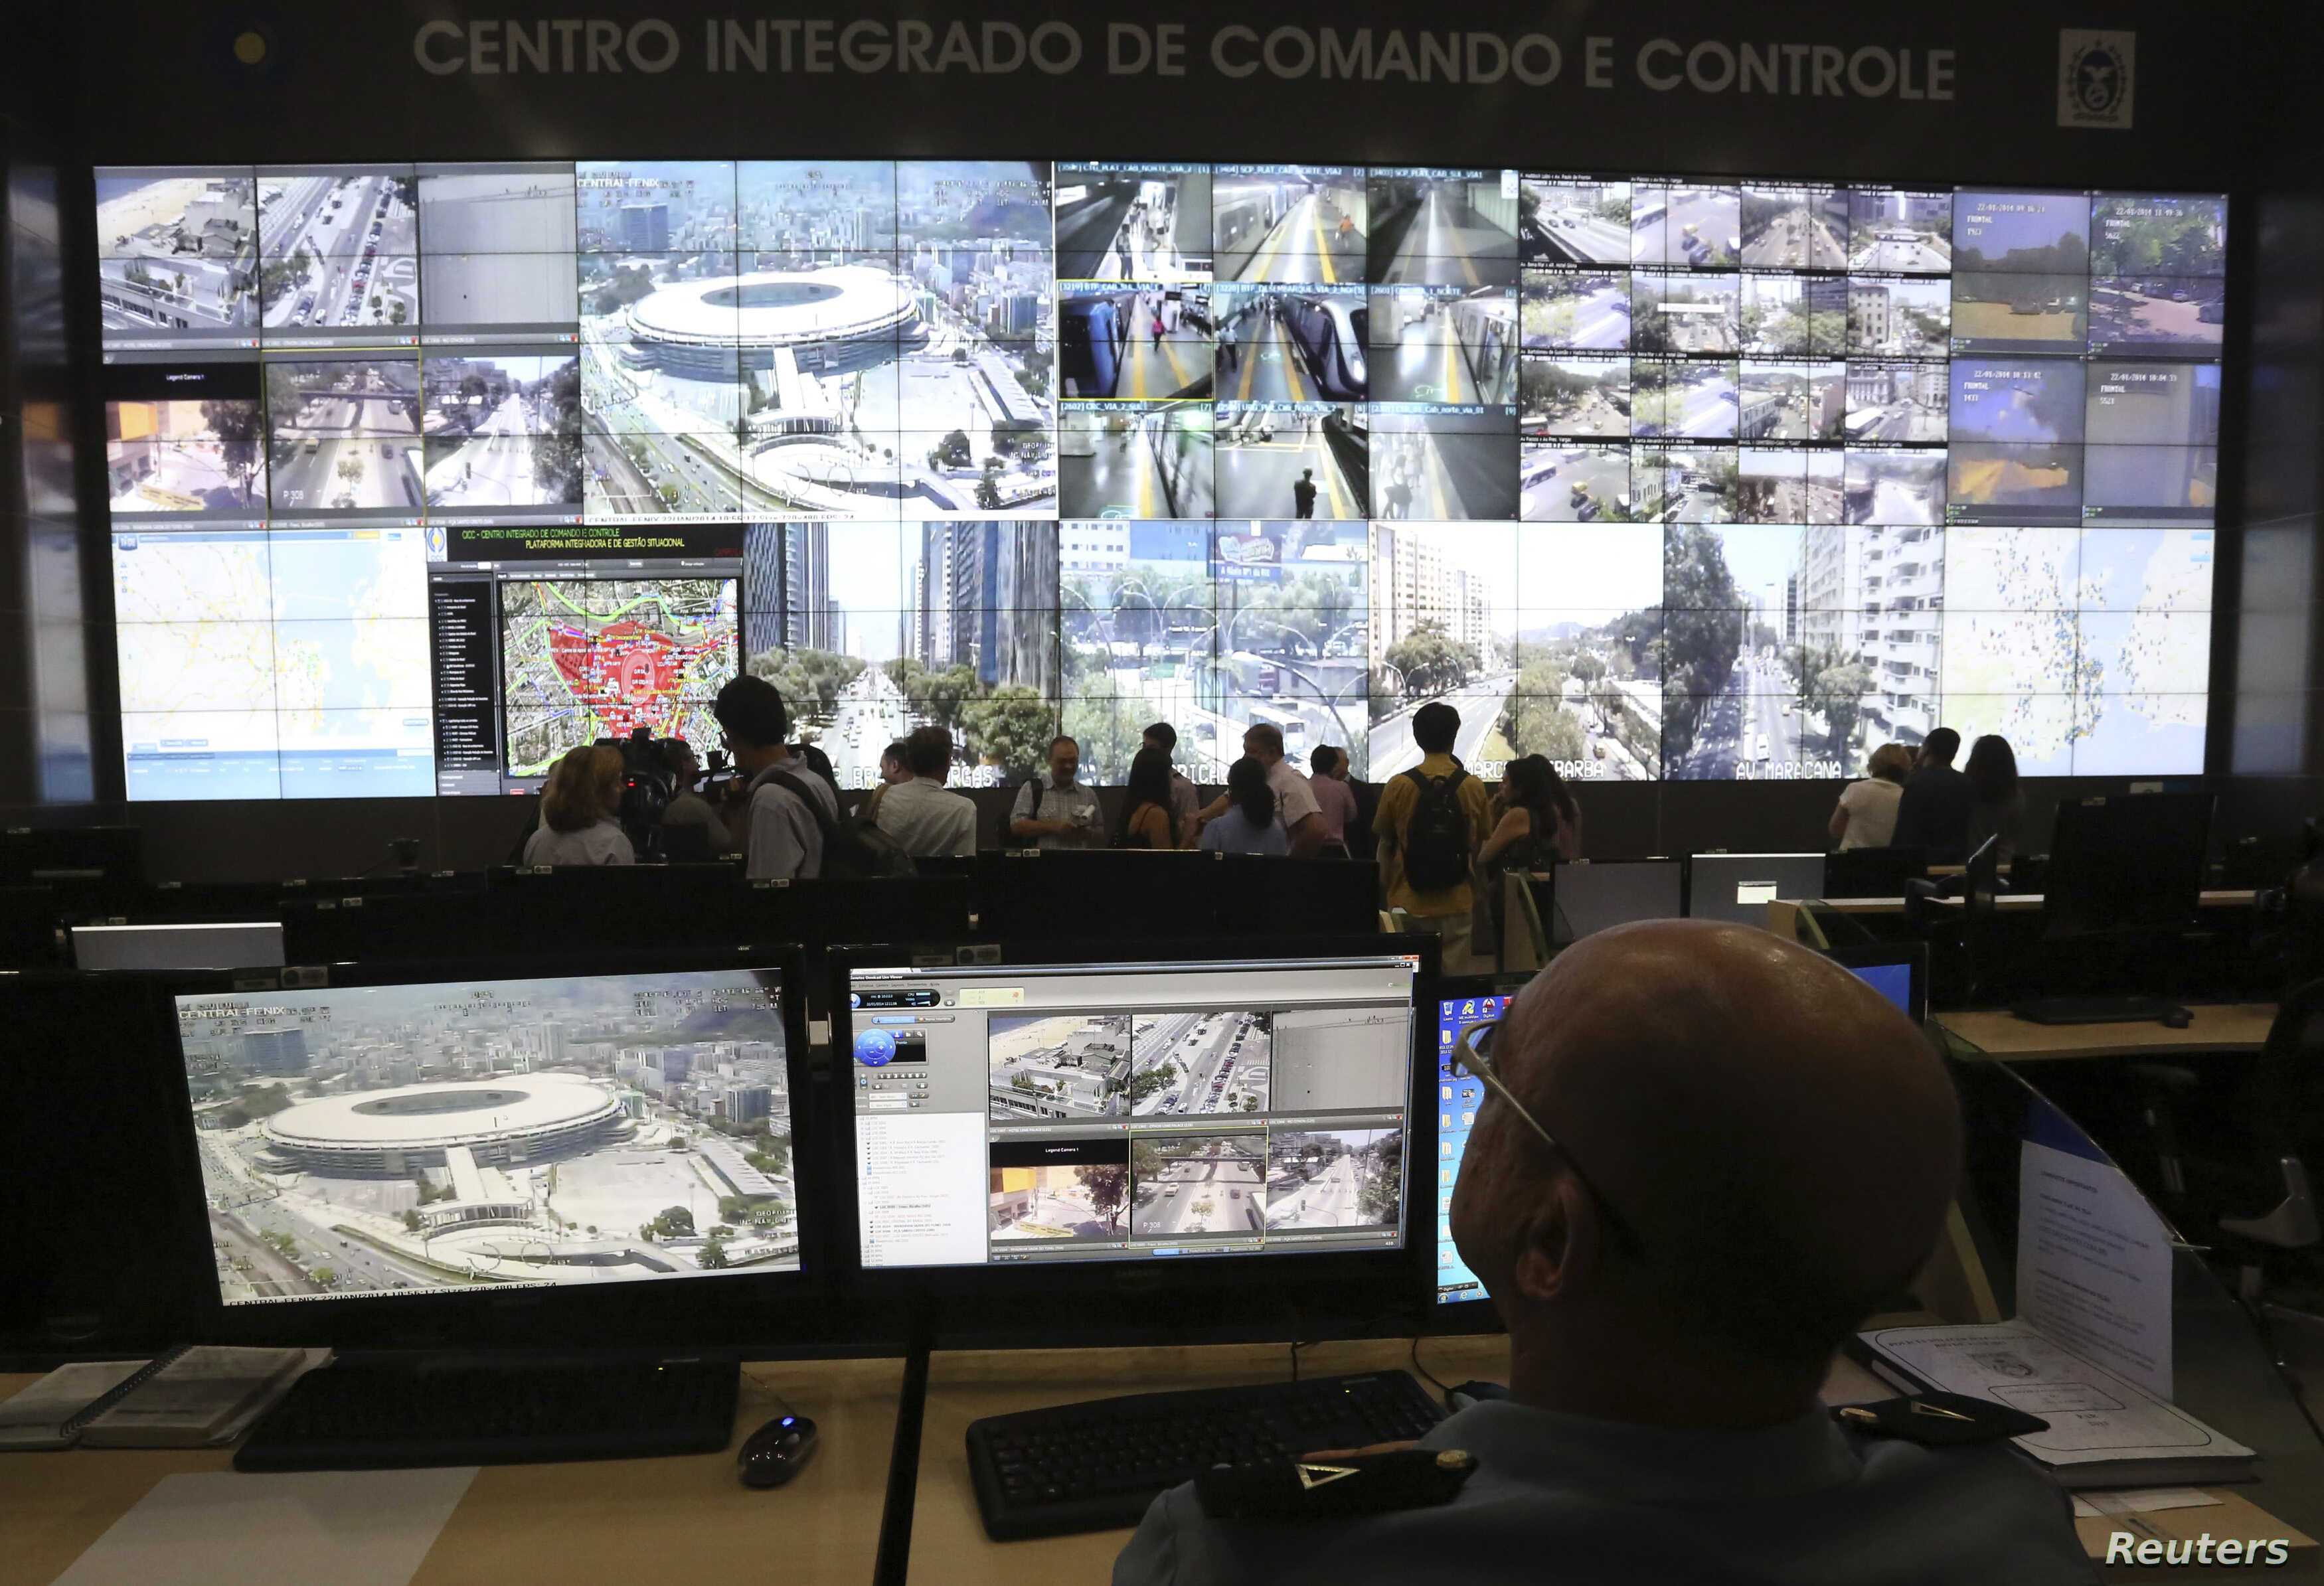 A policeman observes a screen displaying the Maracana stadium during a media tour at the security center for the 2014 soccer World Cup in Rio de Janeiro, Jan. 22, 2014.